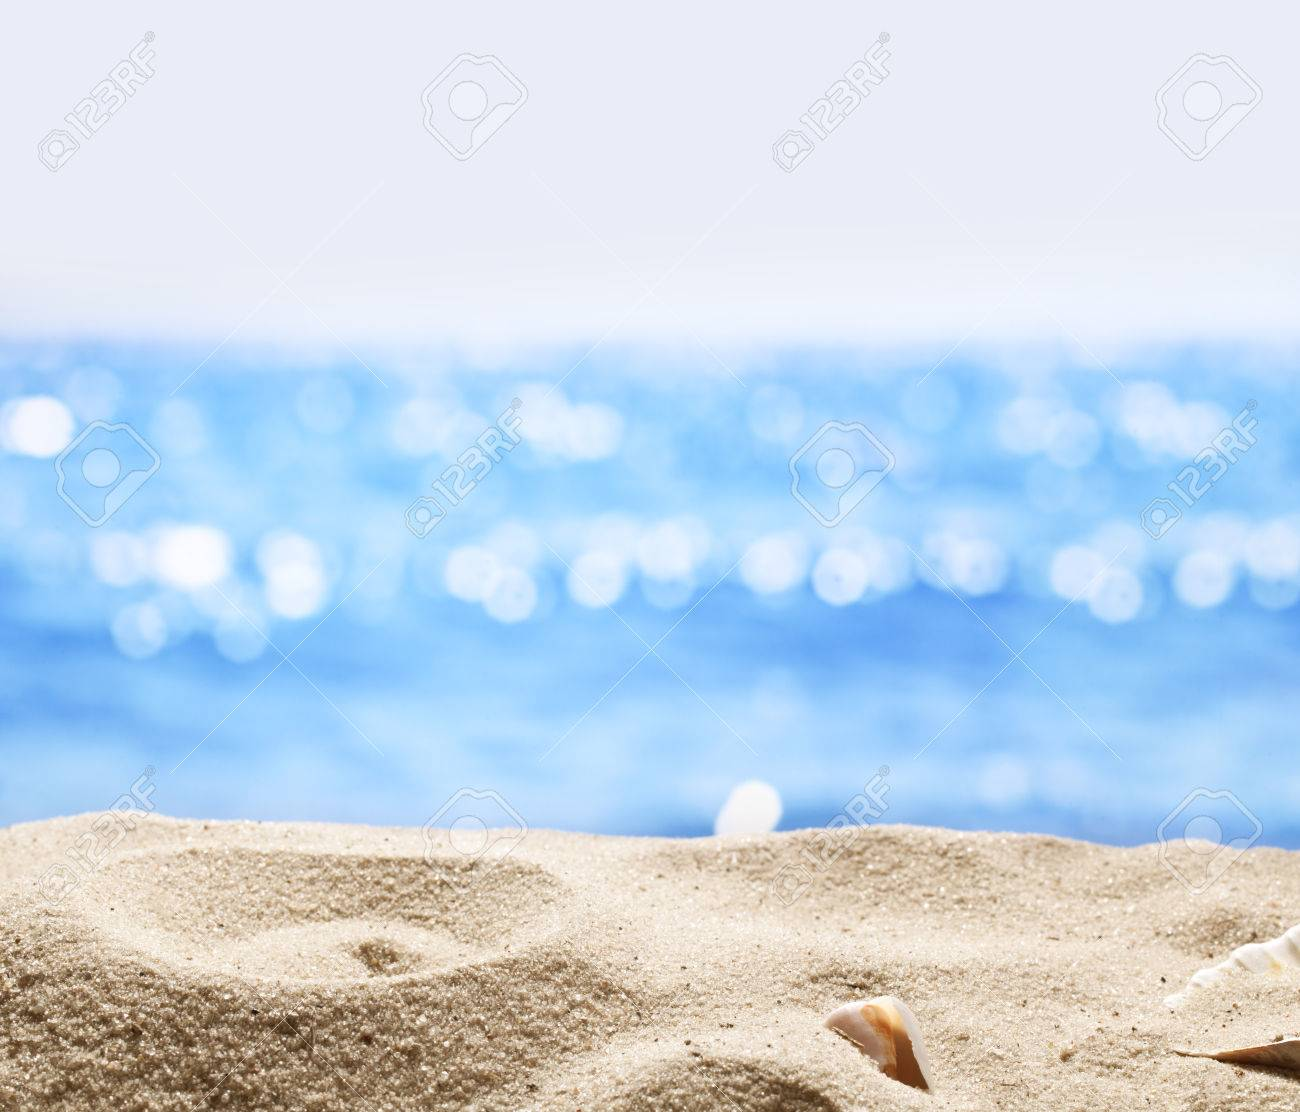 Sand with blurred sea background. File has clipping path for holes in the sand.